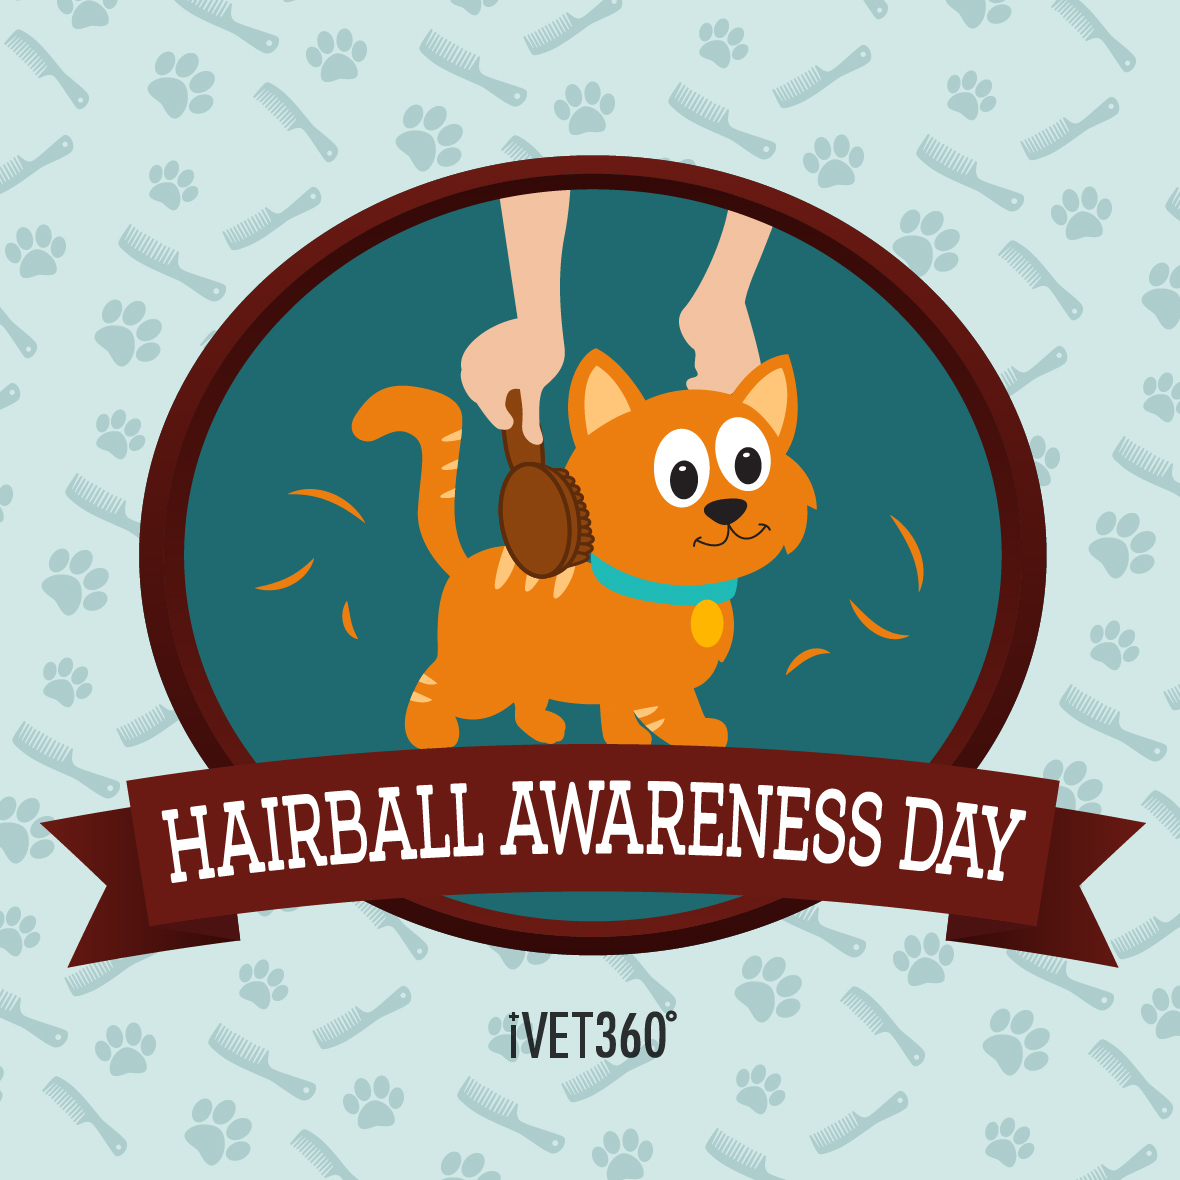 Hairball Awareness Day